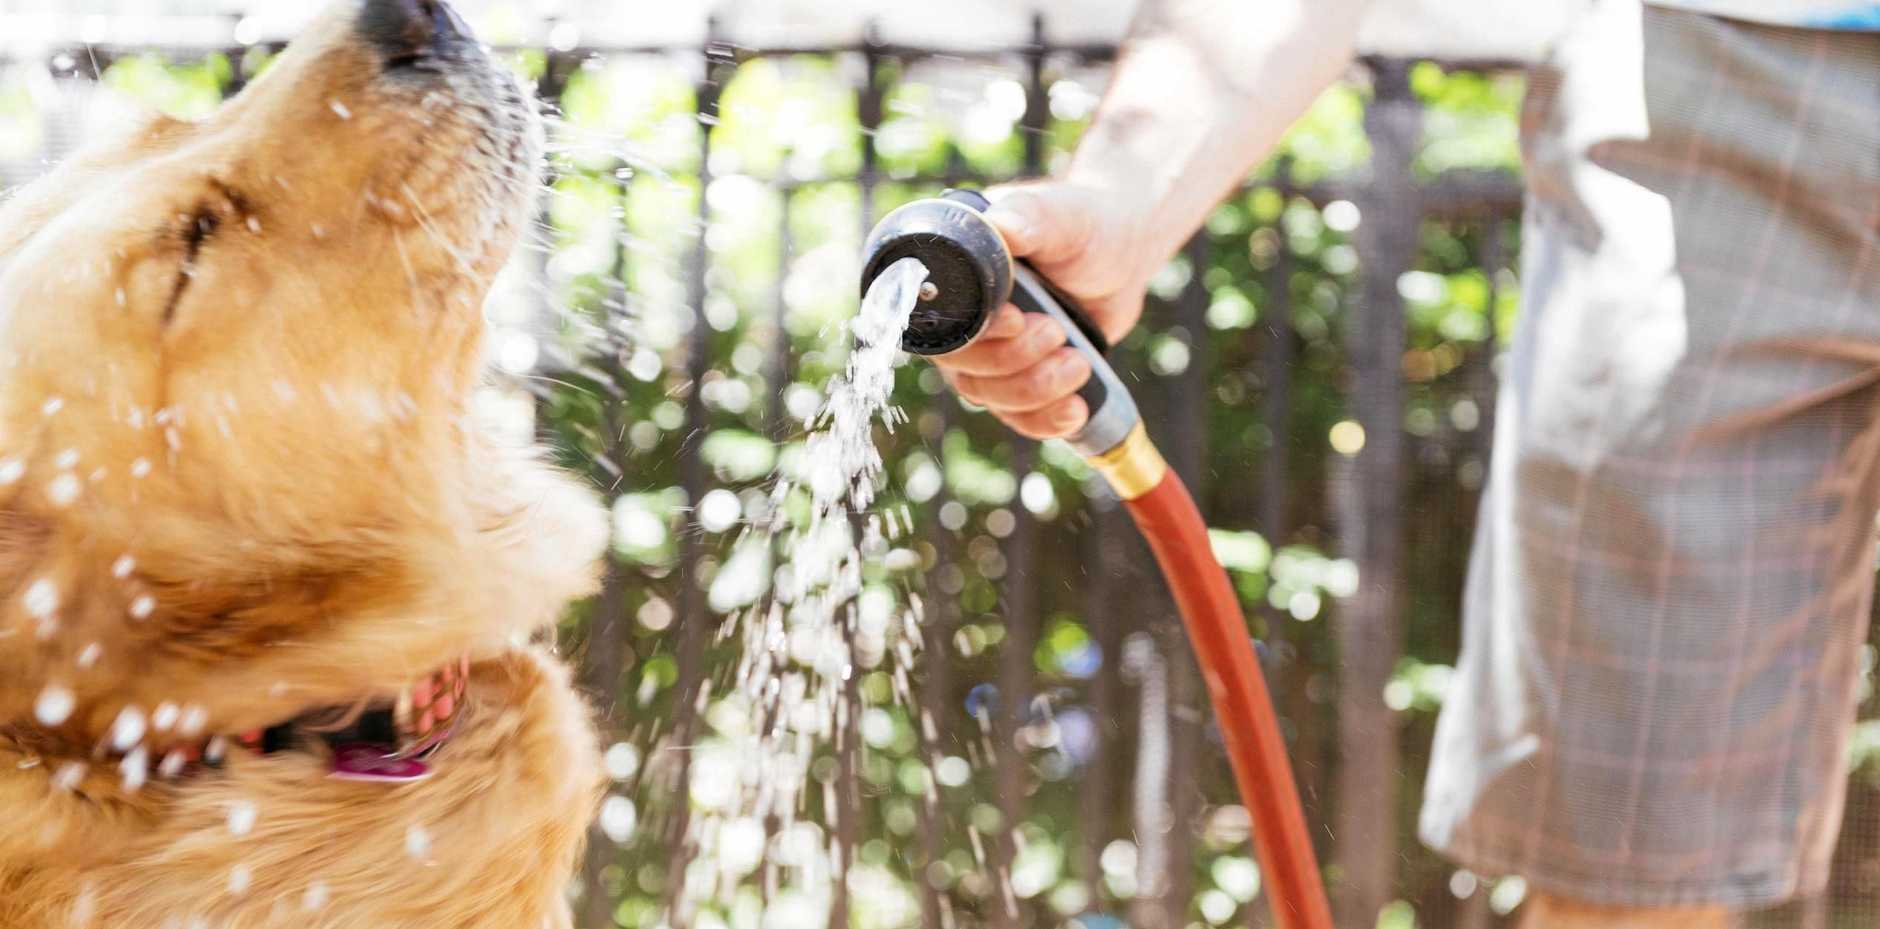 WATCH OUT: It's important to keep an eye on people vulnerable to heat illness during summer.